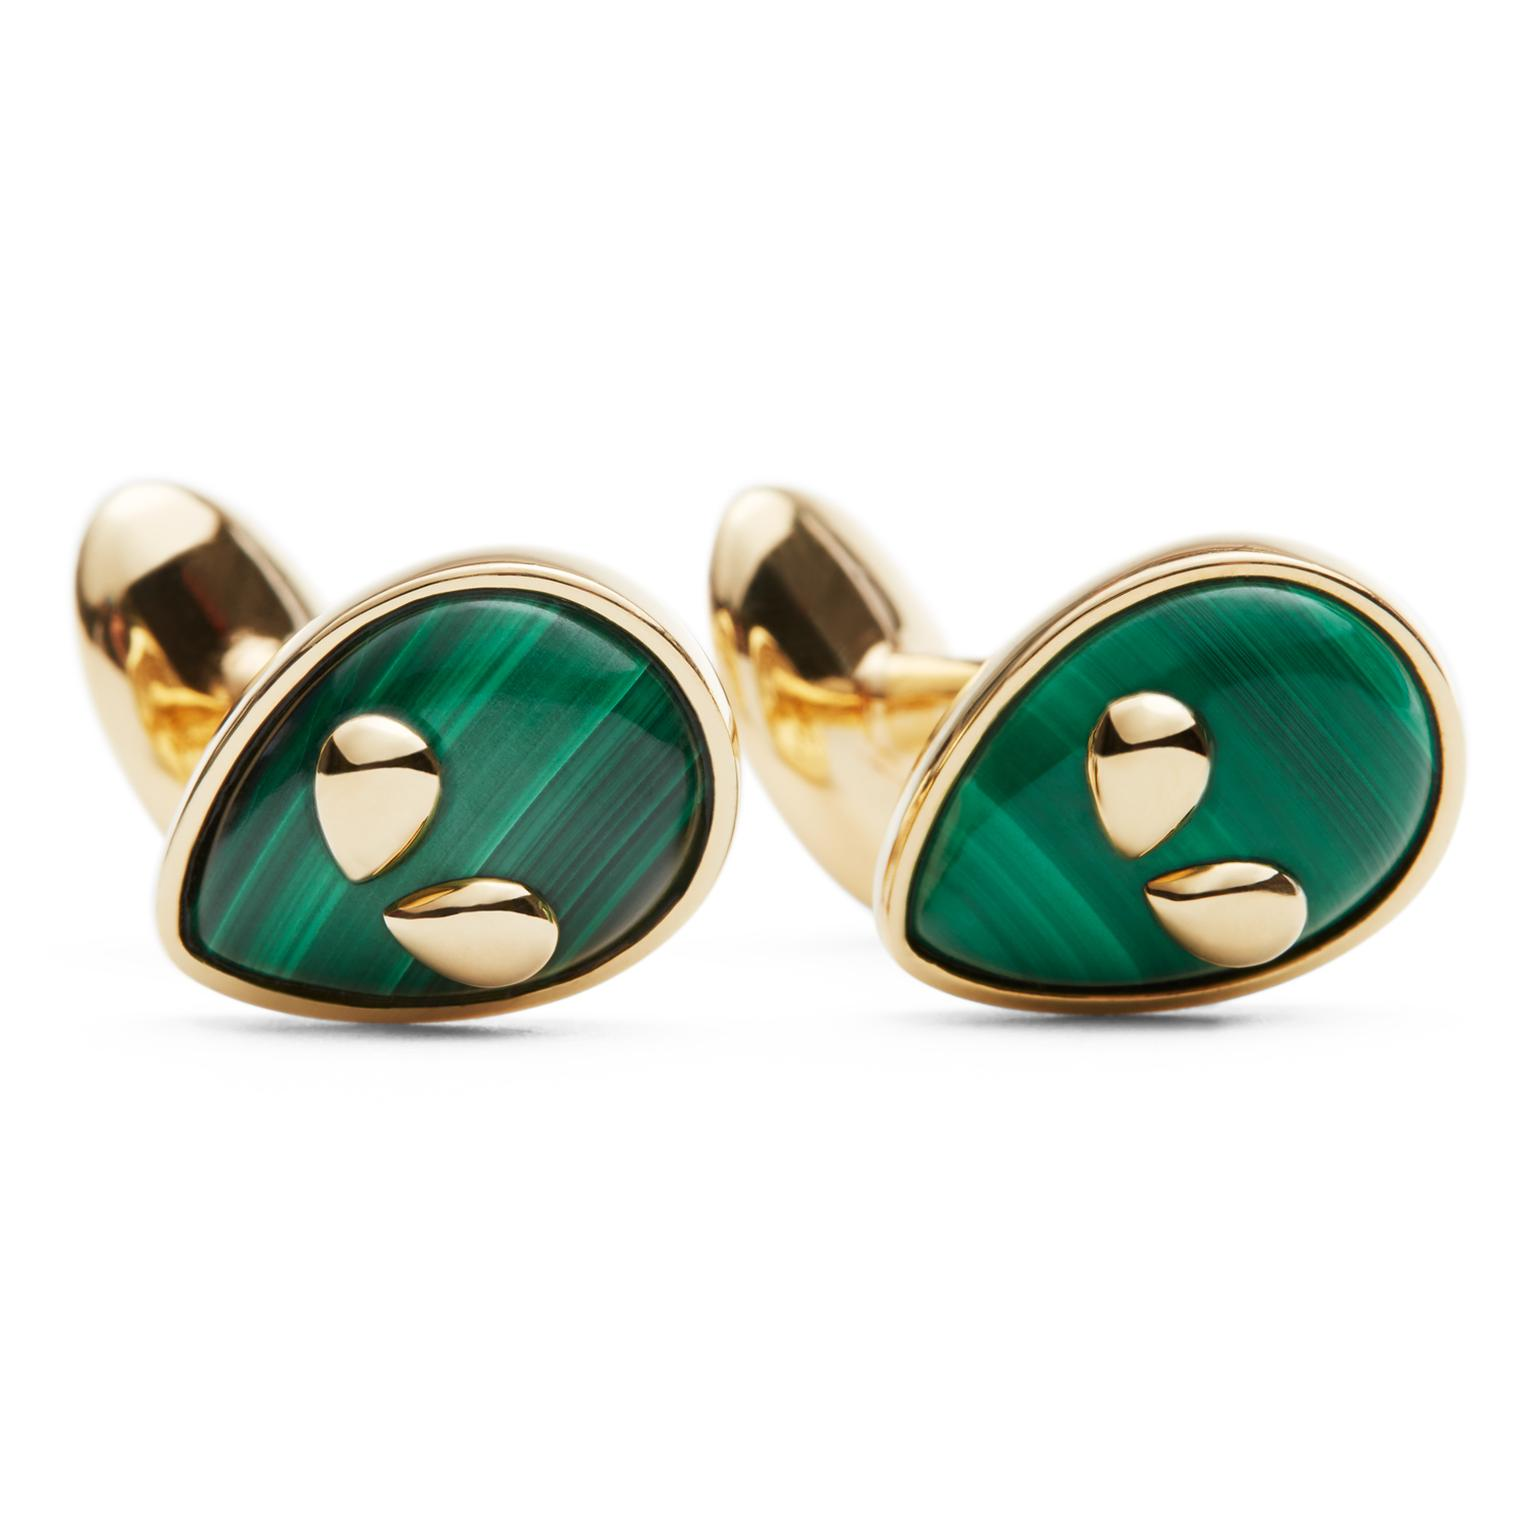 Alina Abegg Cosmic Escape Alien cufflinks in malachite